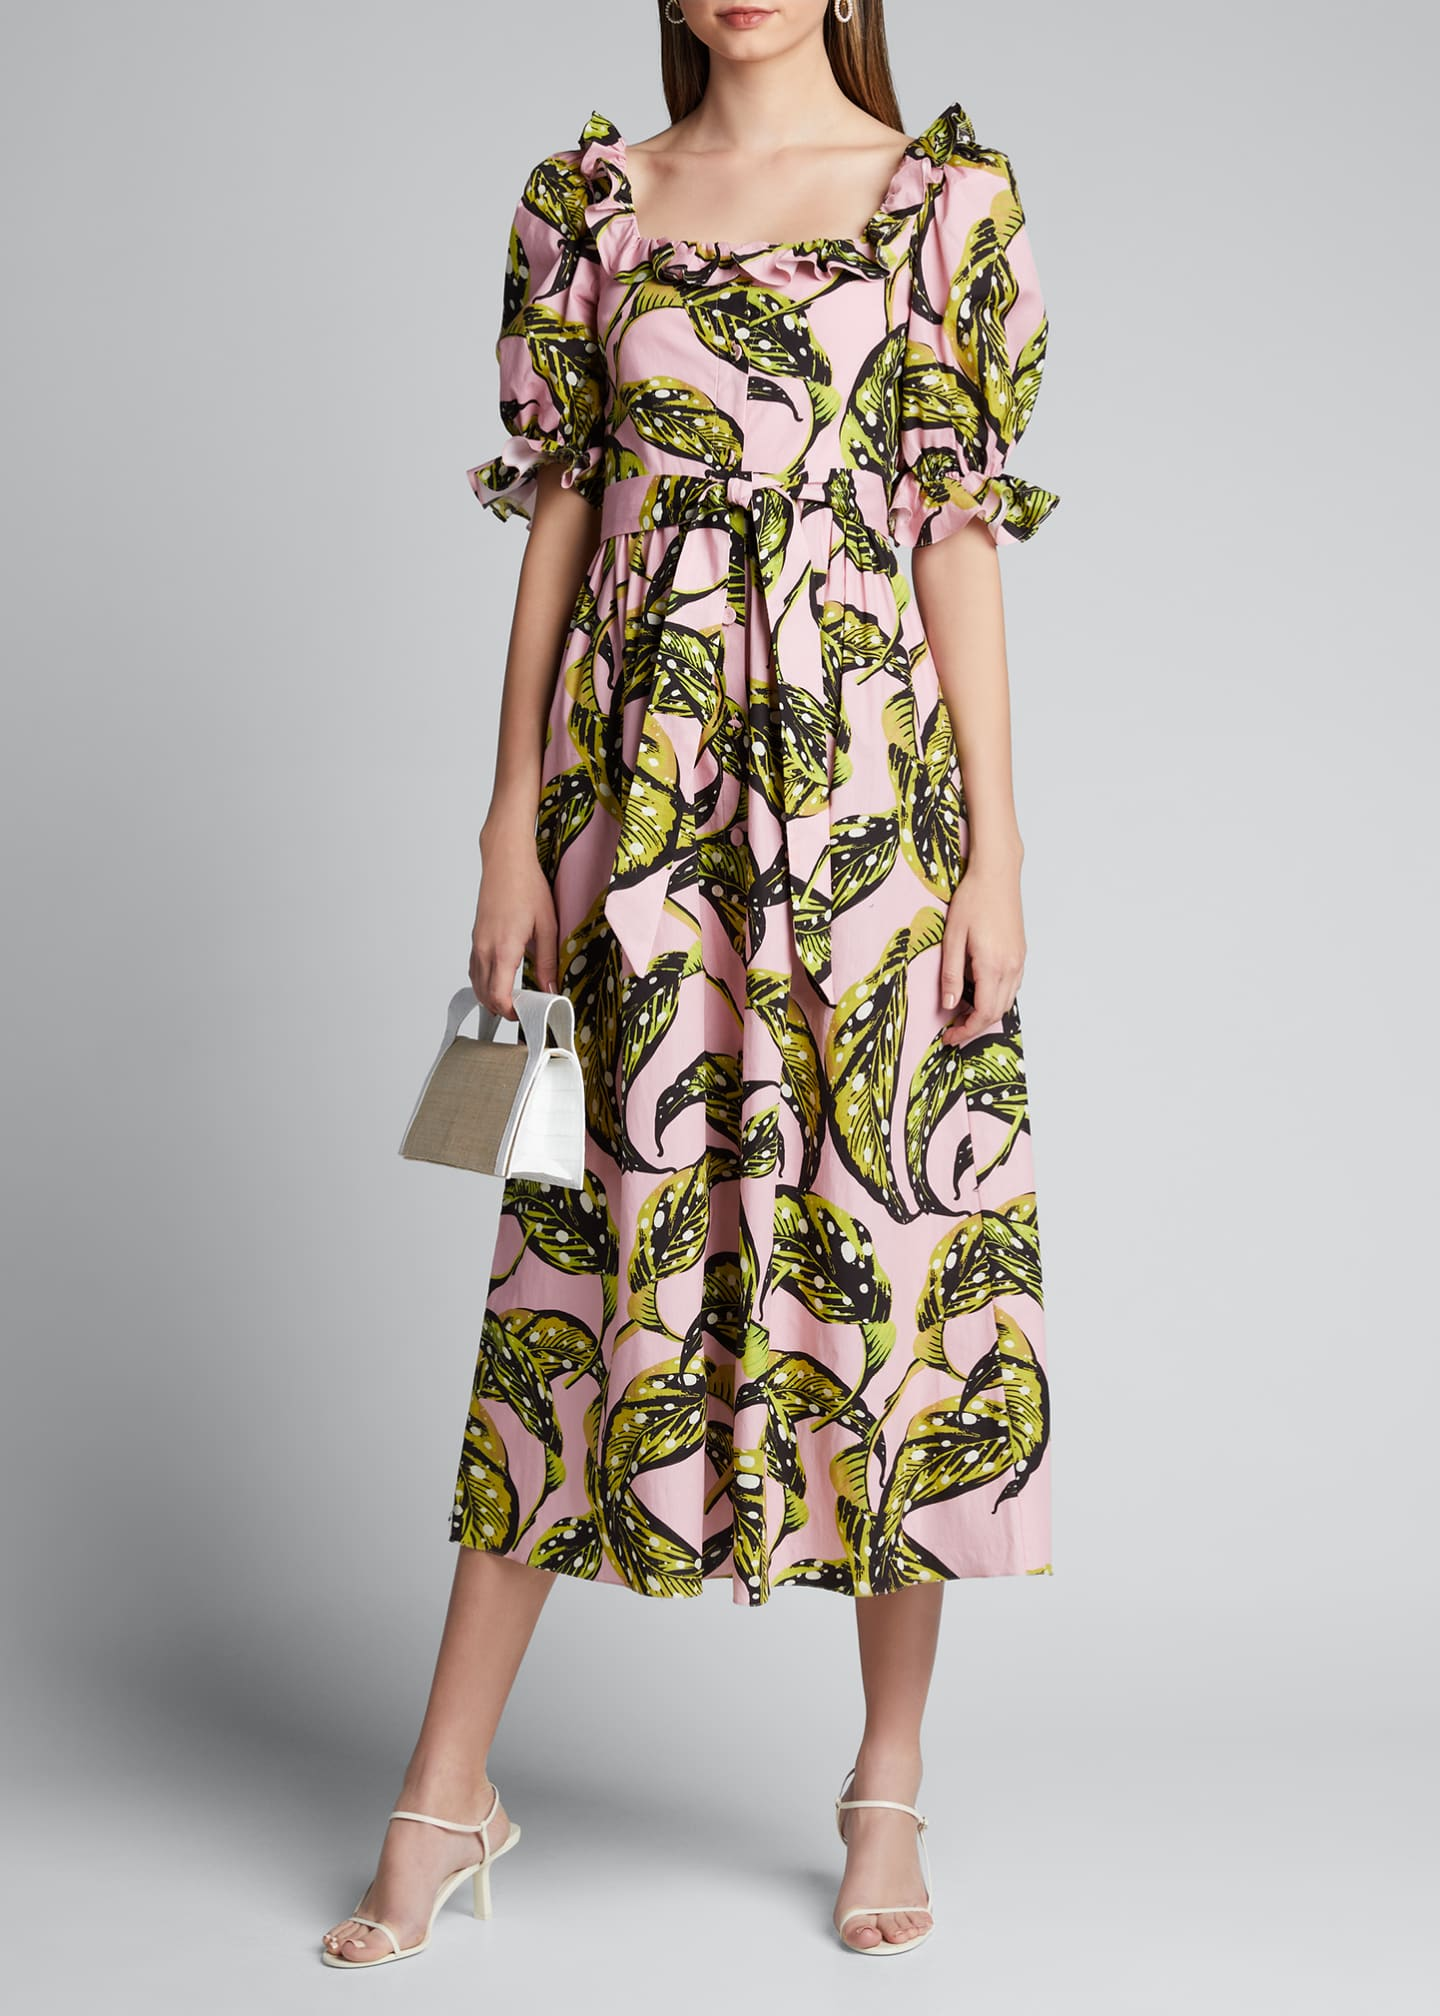 Borgo de Nor Corina Leaf-Print Poplin Puff-Sleeve Dress